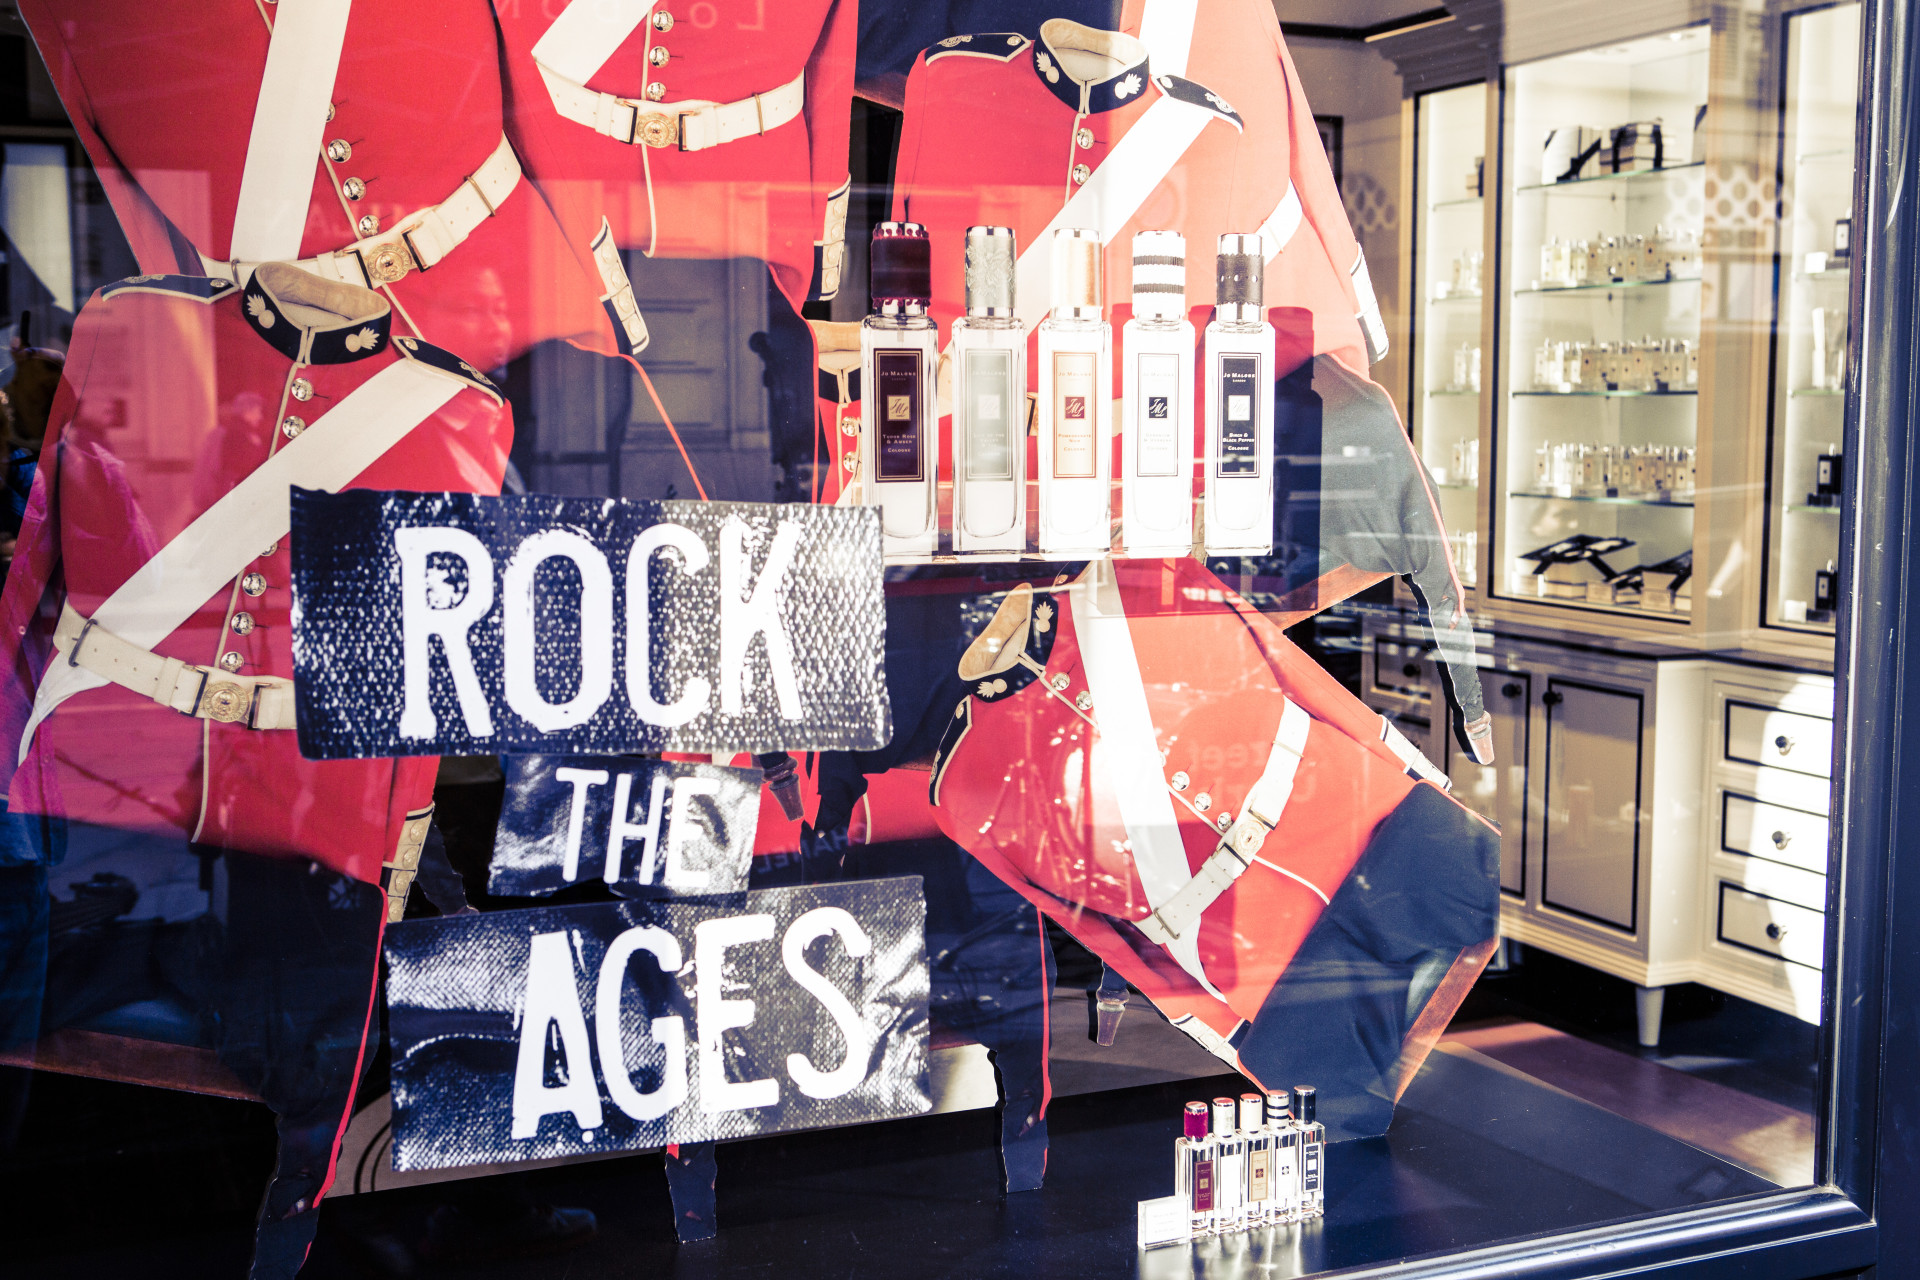 ROCK THE AGES – Street Clerks @ Jo Malone